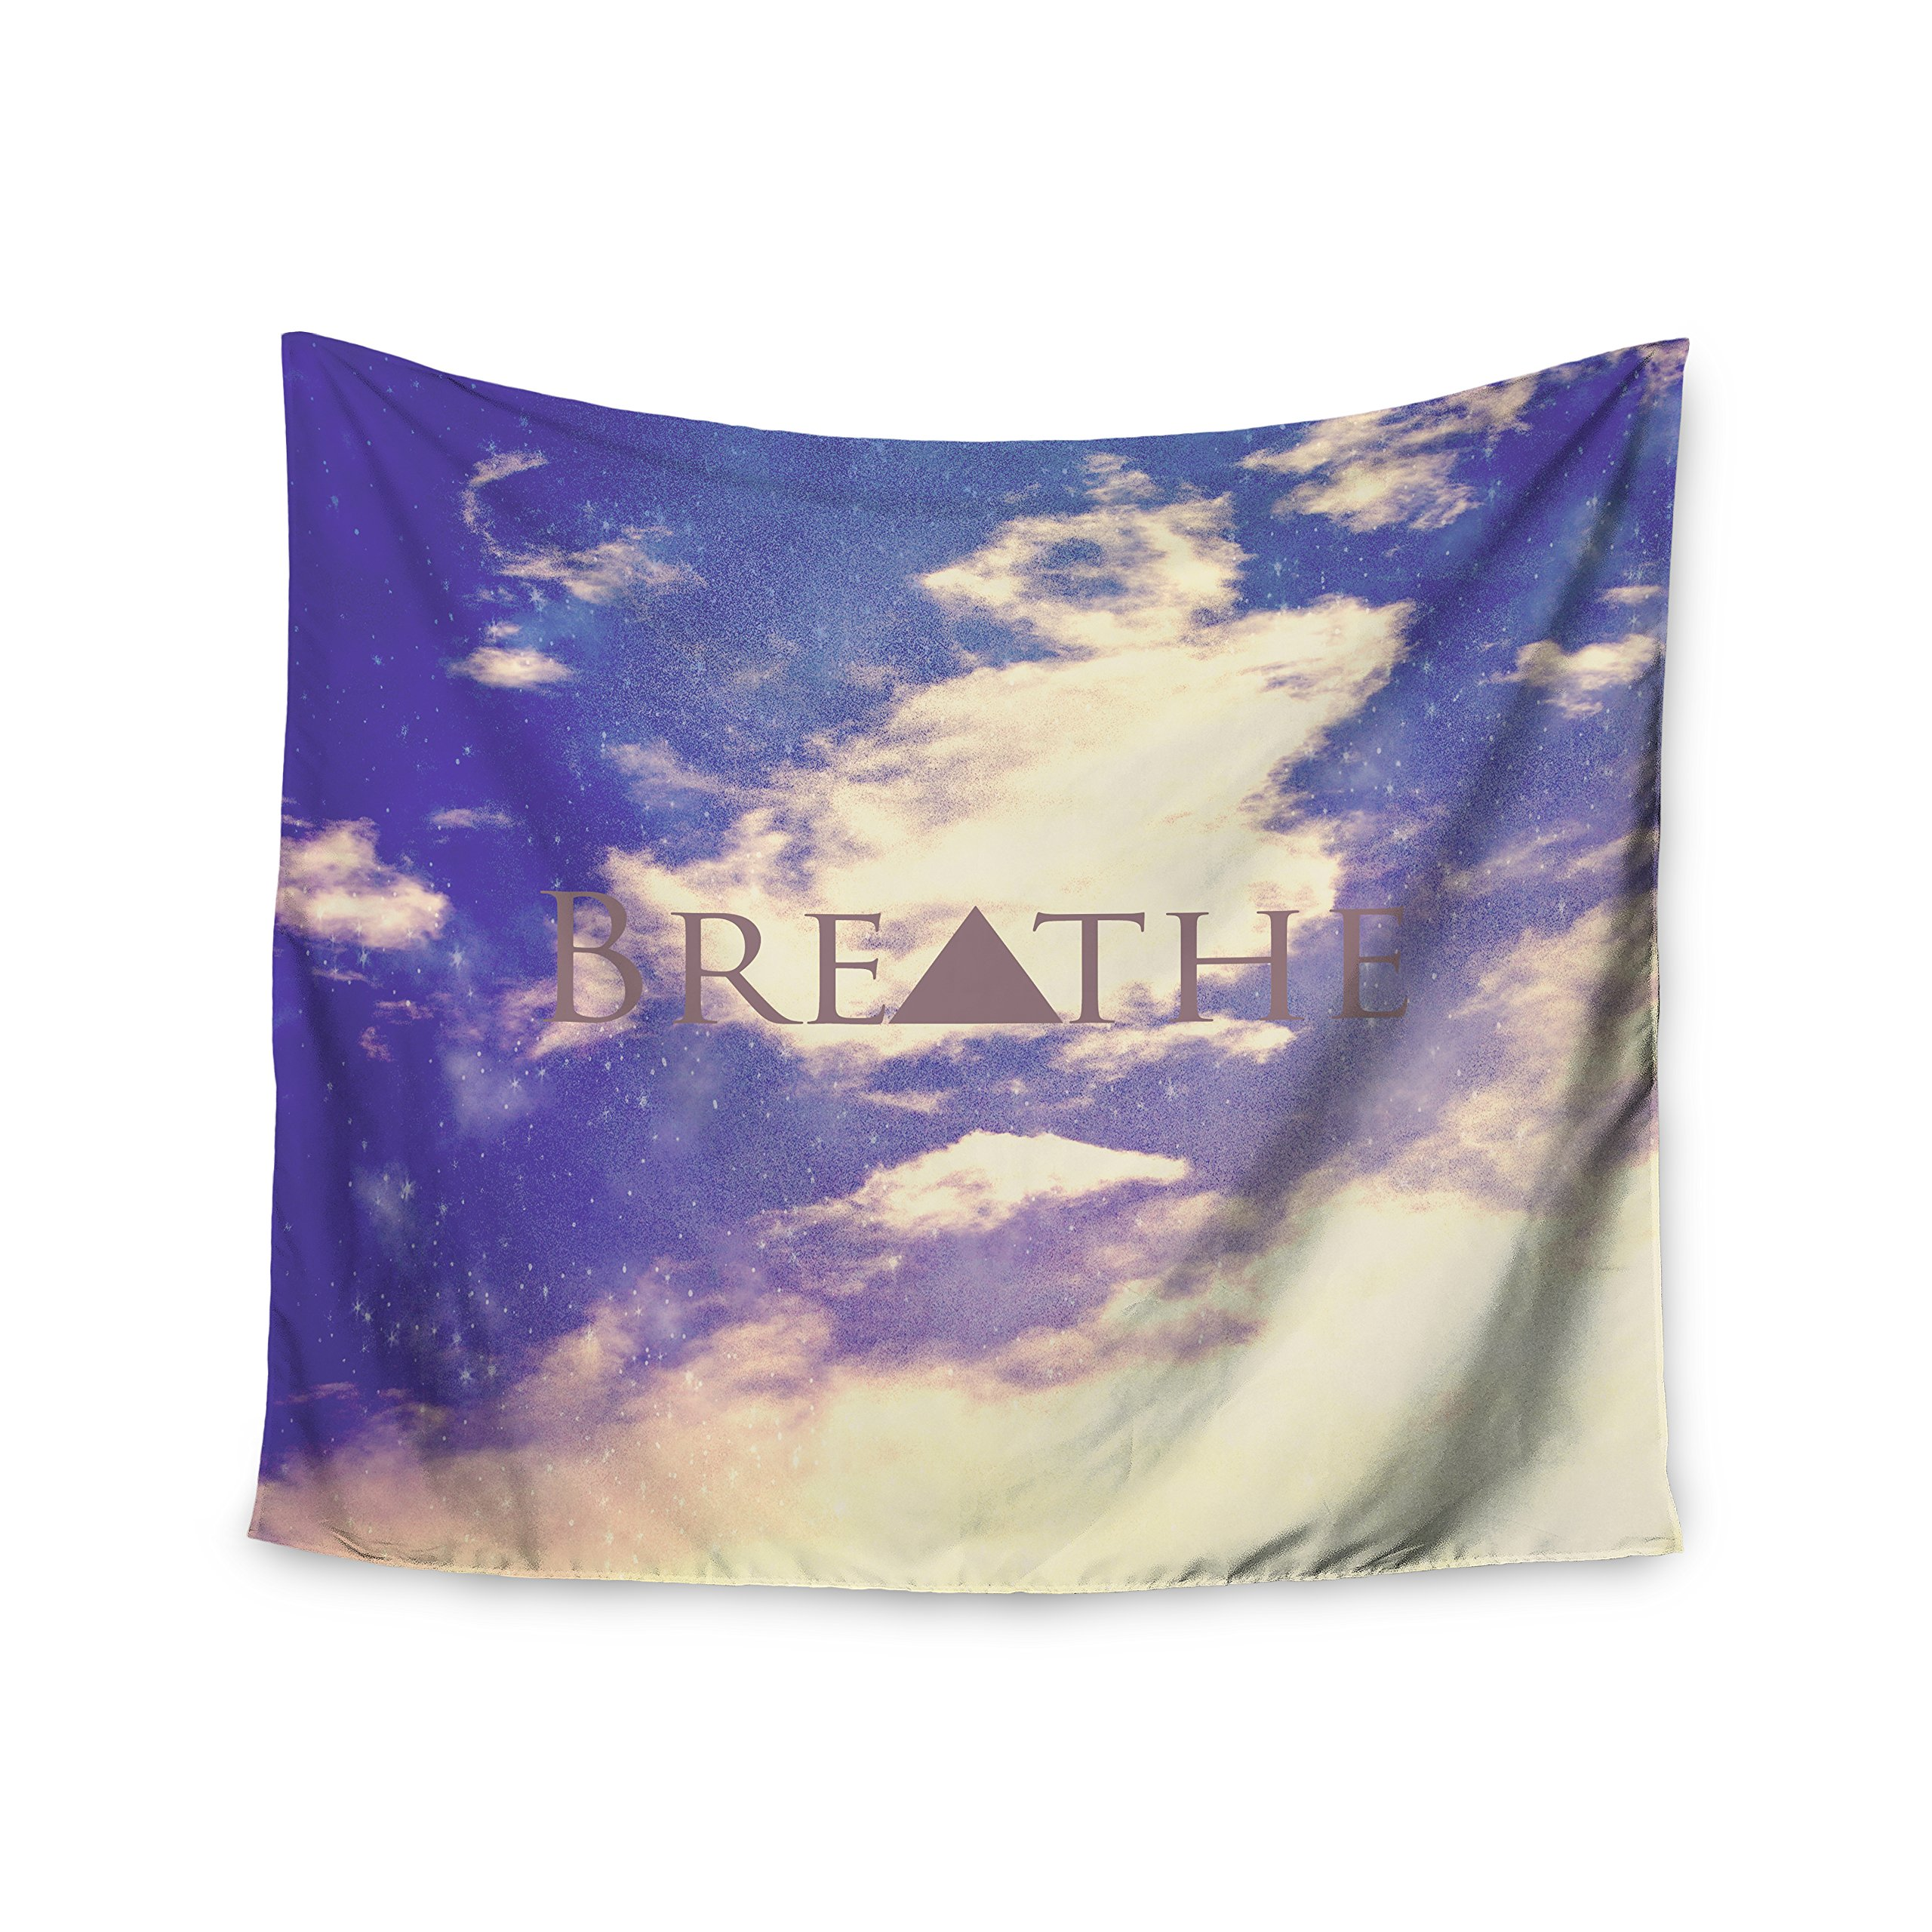 KESS InHouse Rachel Burbee Breathe Wall Tapestry, 68'' X 80'' by KESS InHouse